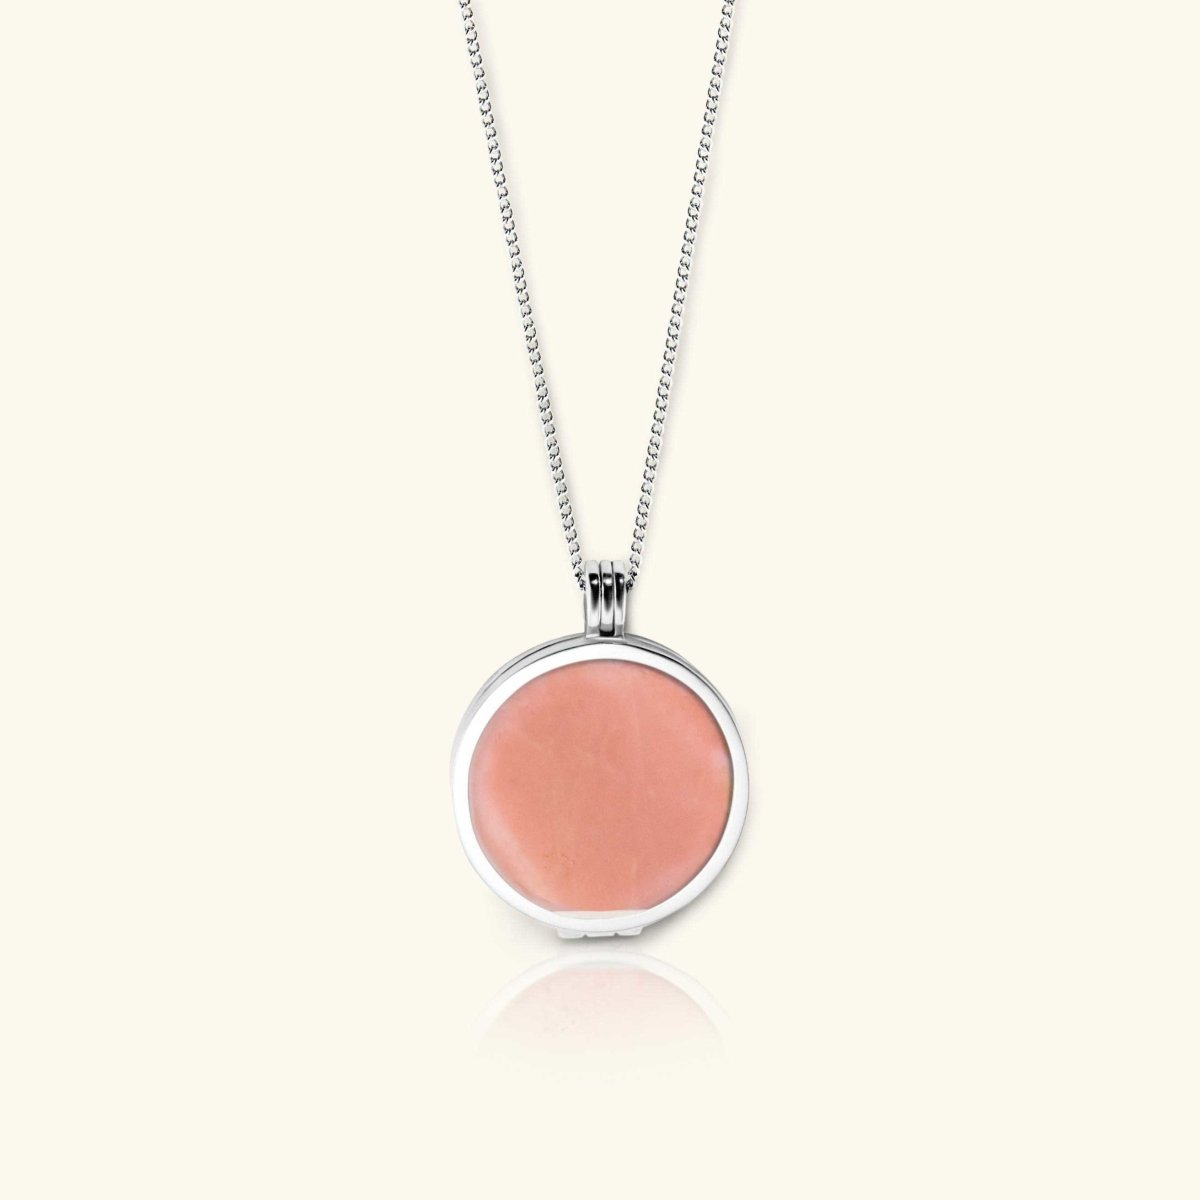 Morning Cloud Necklace – Pink Opal Gemstone - digital lockets by evermée